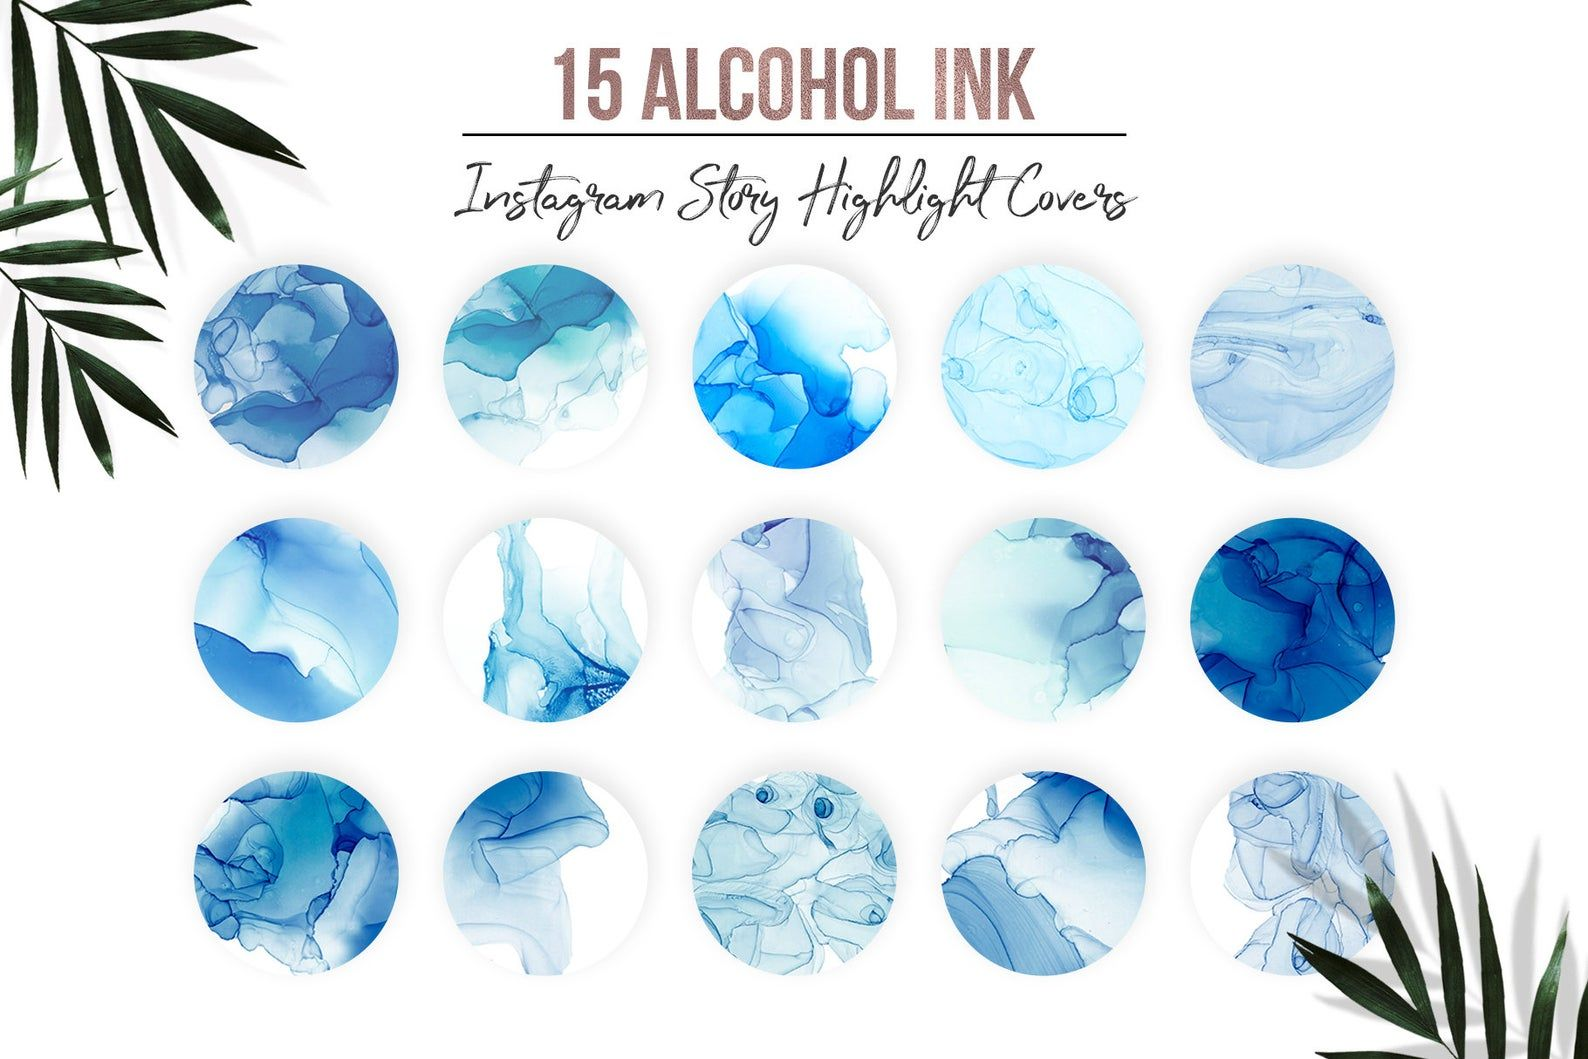 Alcohol ink watercolor instagram story highlight covers